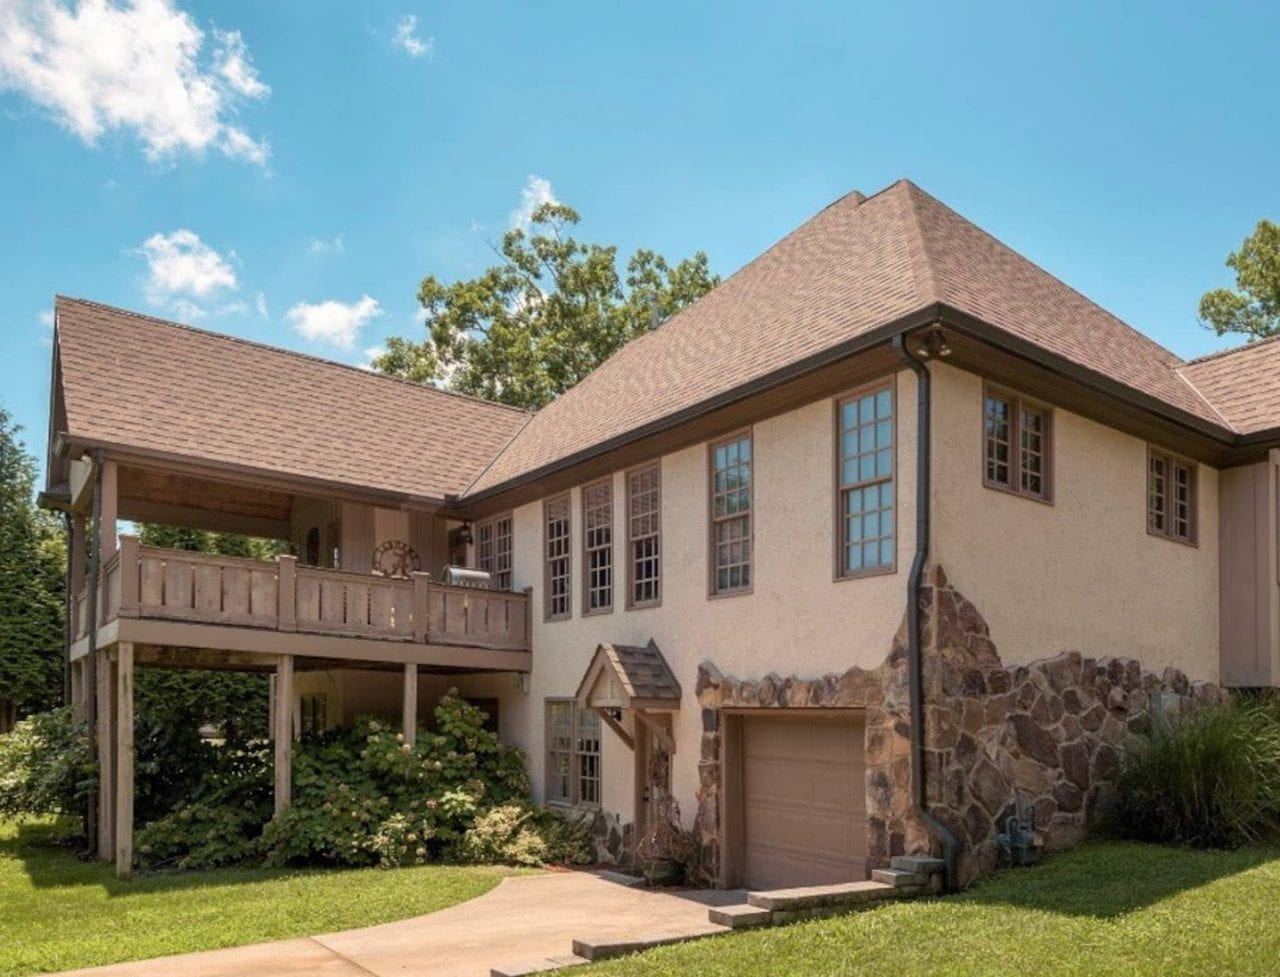 Elegant 1200 sf apt in City of Lookout Mountain TN exterior